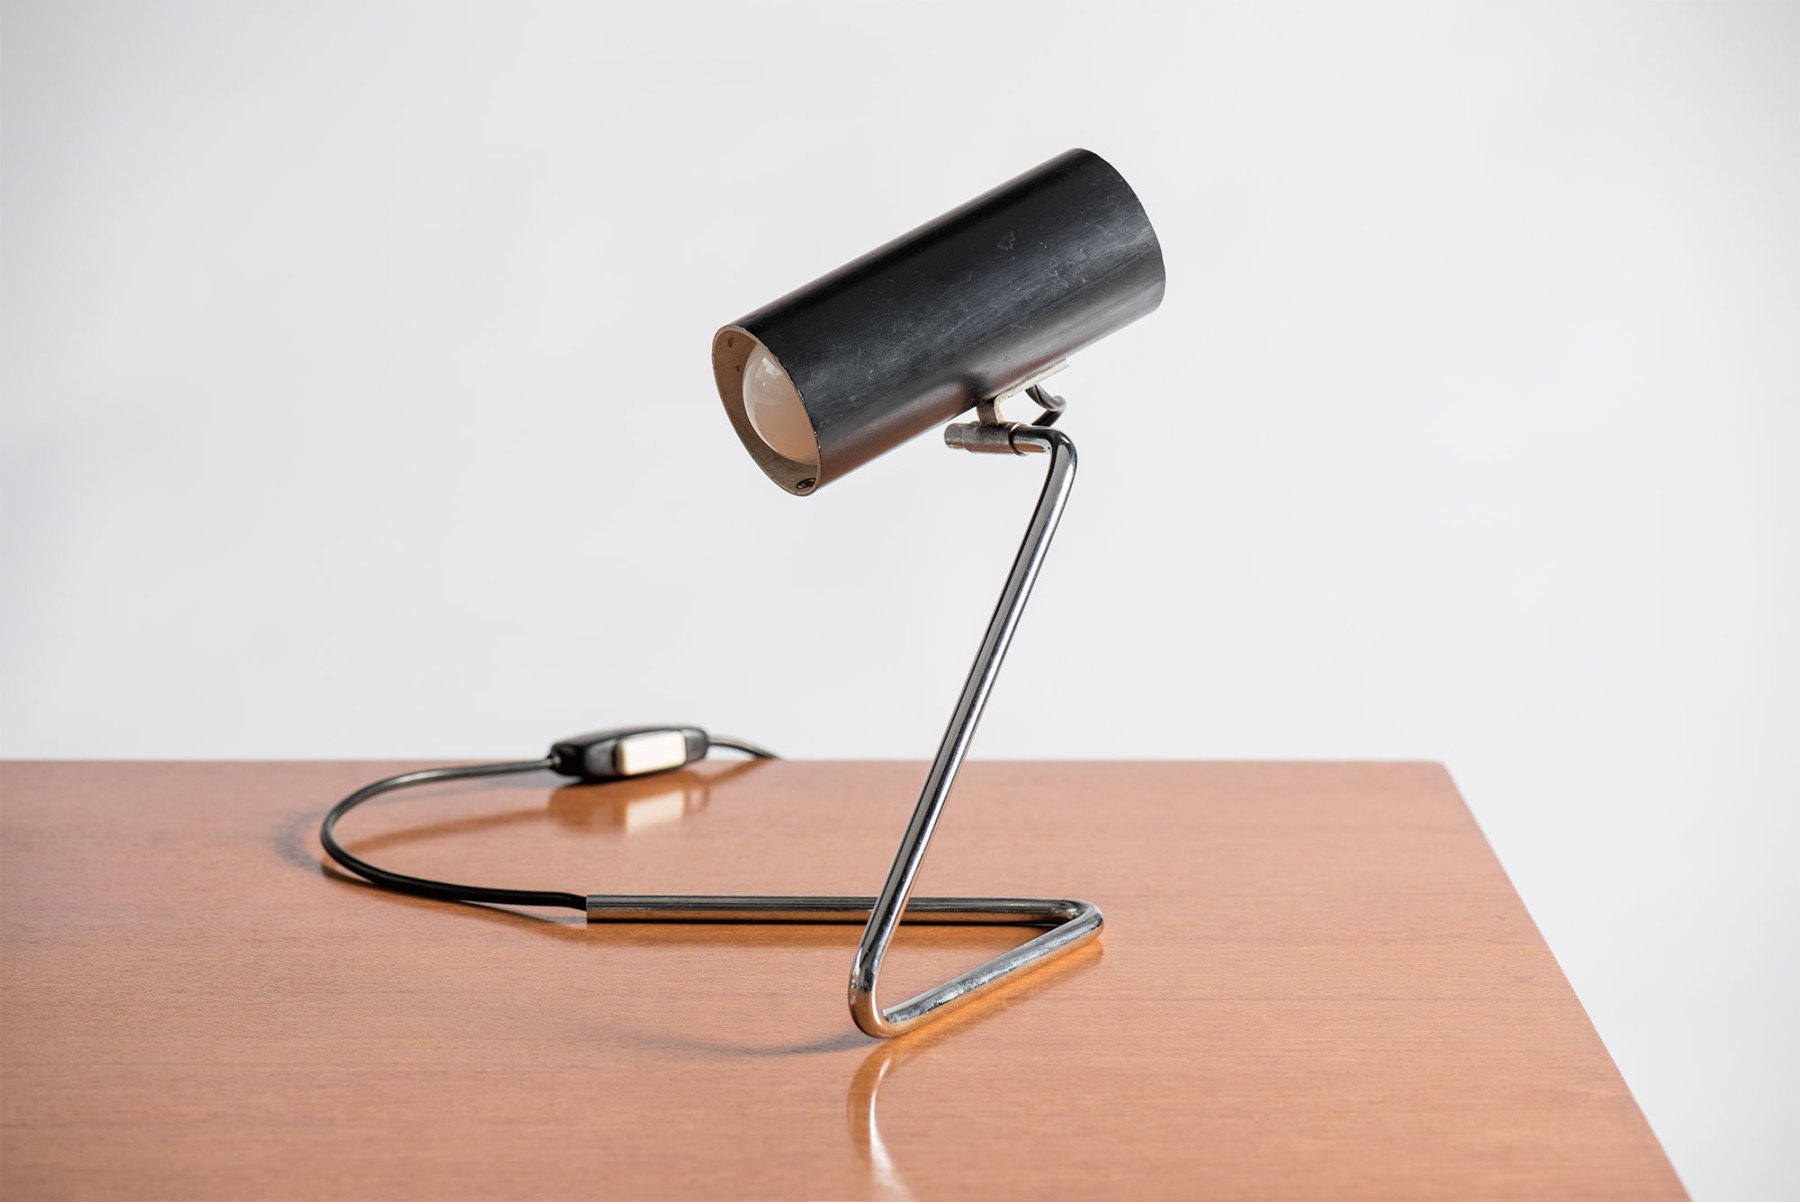 Gino Sarfatti |  Wall or desk light, model 551/31B